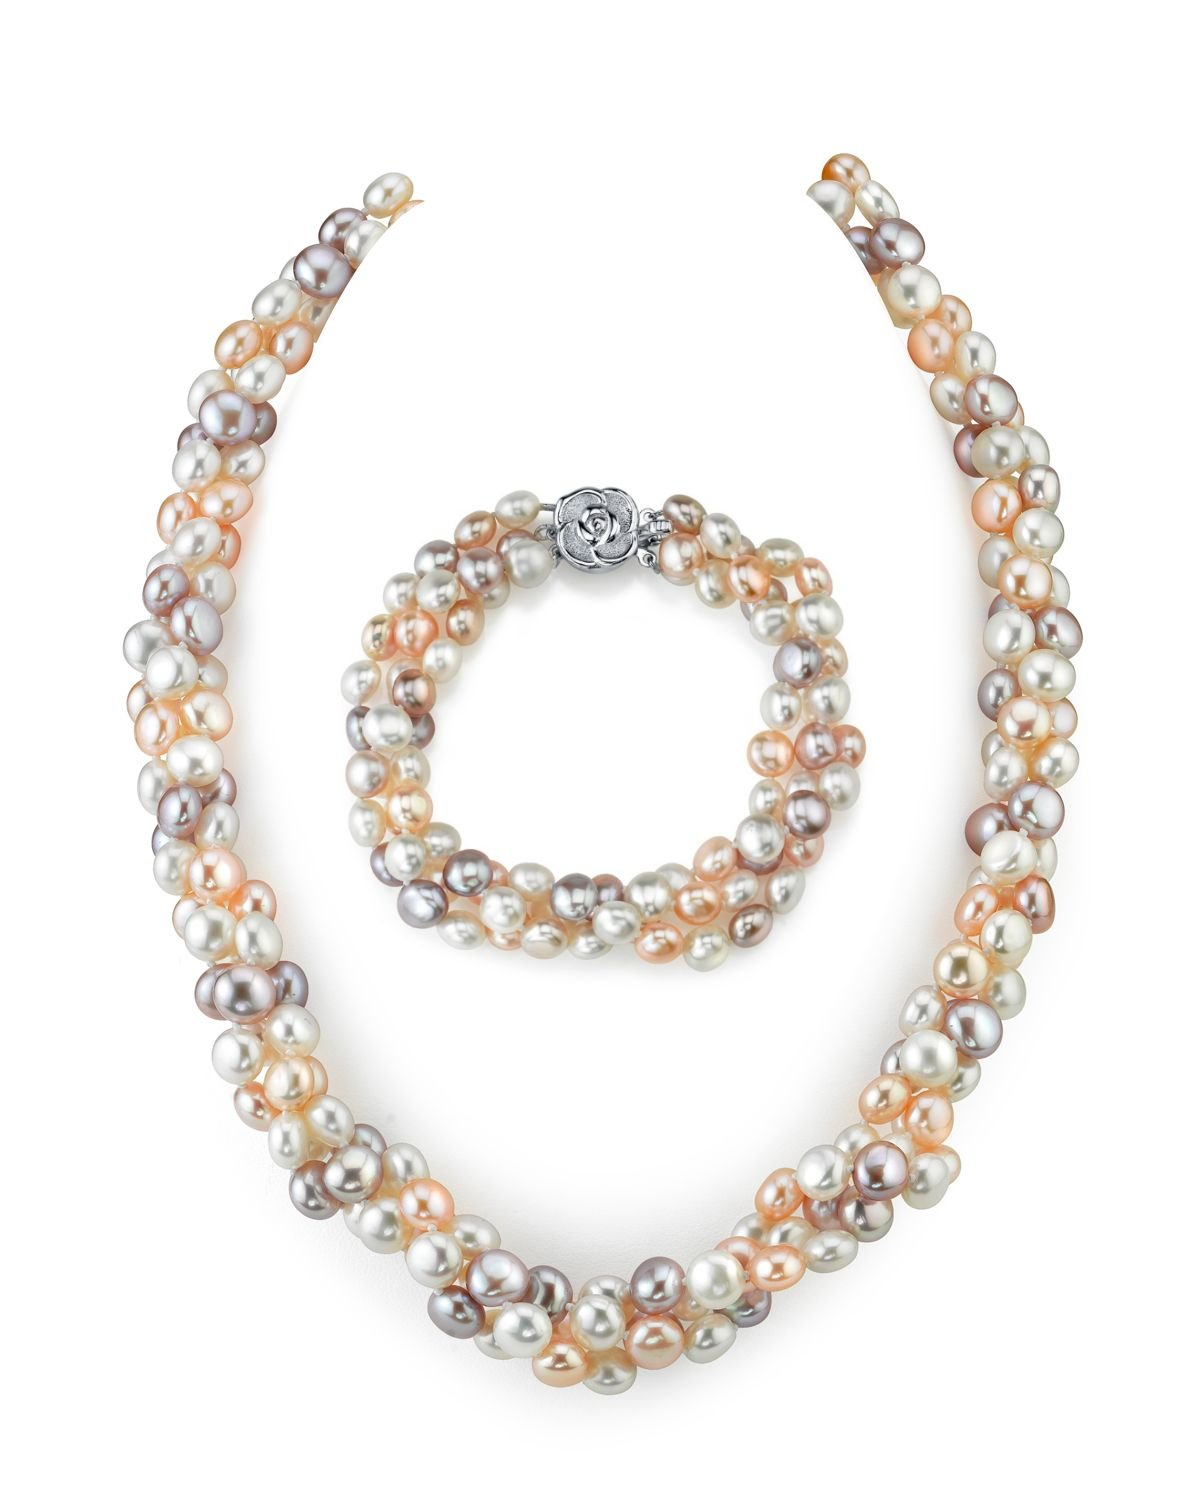 5mm Multicolored Freshwater Cultured Pearl Necklace & Bracelet